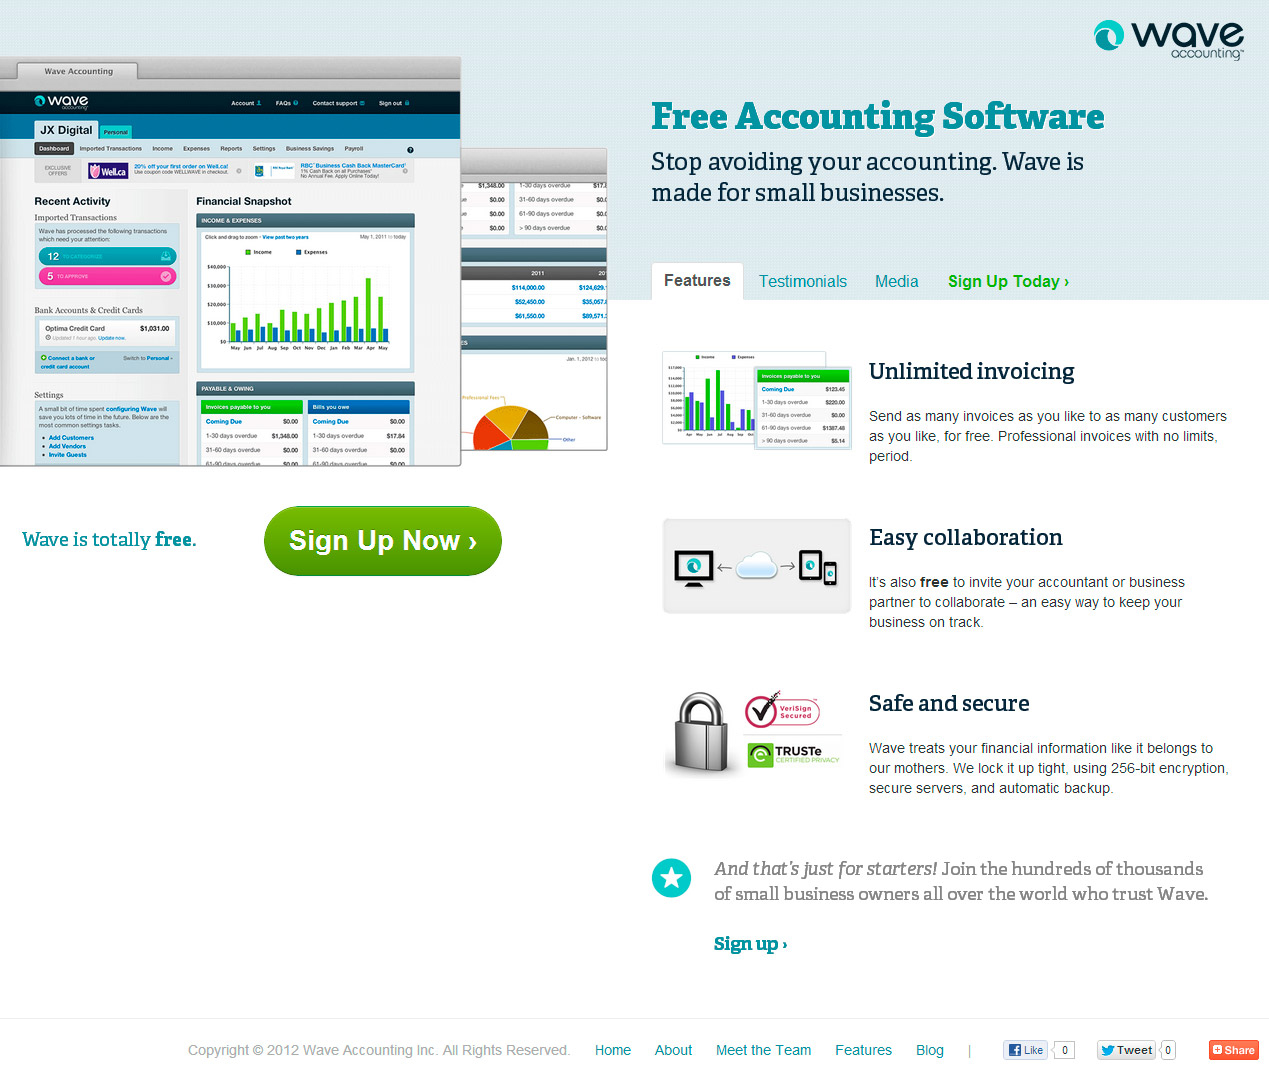 Accounting: 8 Small Business Product Landing Pages Critiqued For